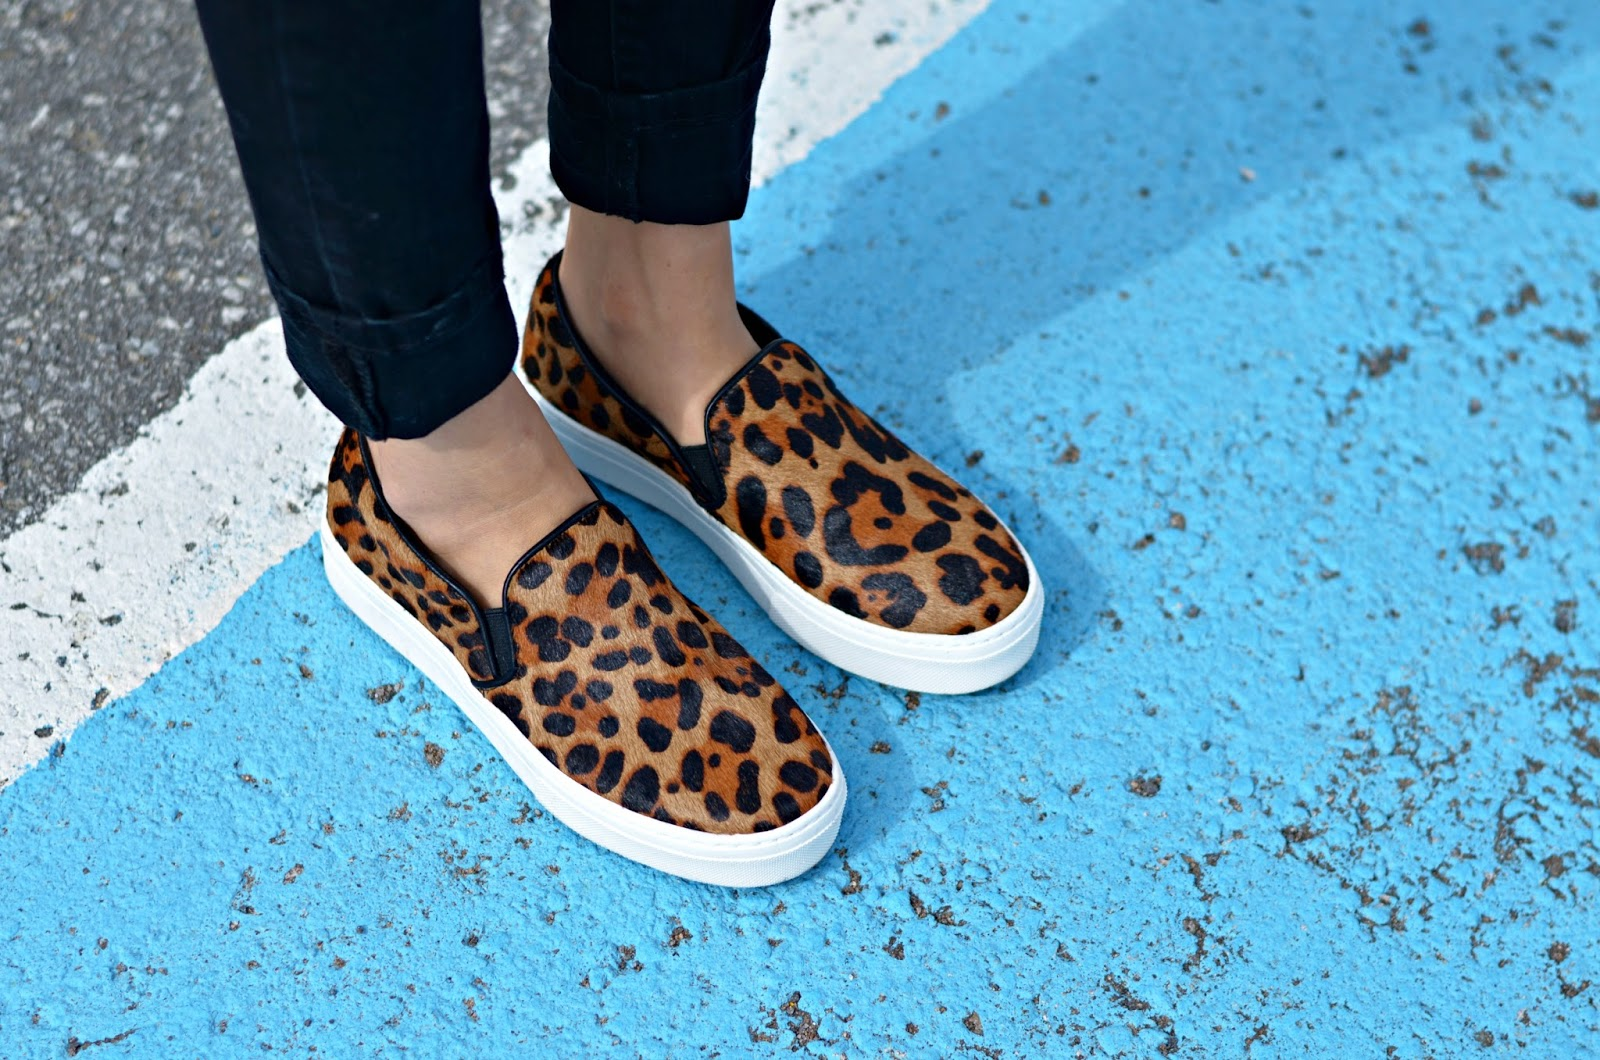 13cde2639bd9 The minute, no wait, the second I saw these slip-on leopard shoes on the  Aldo website, it was love at first sight. More like an obsession at first  sight.